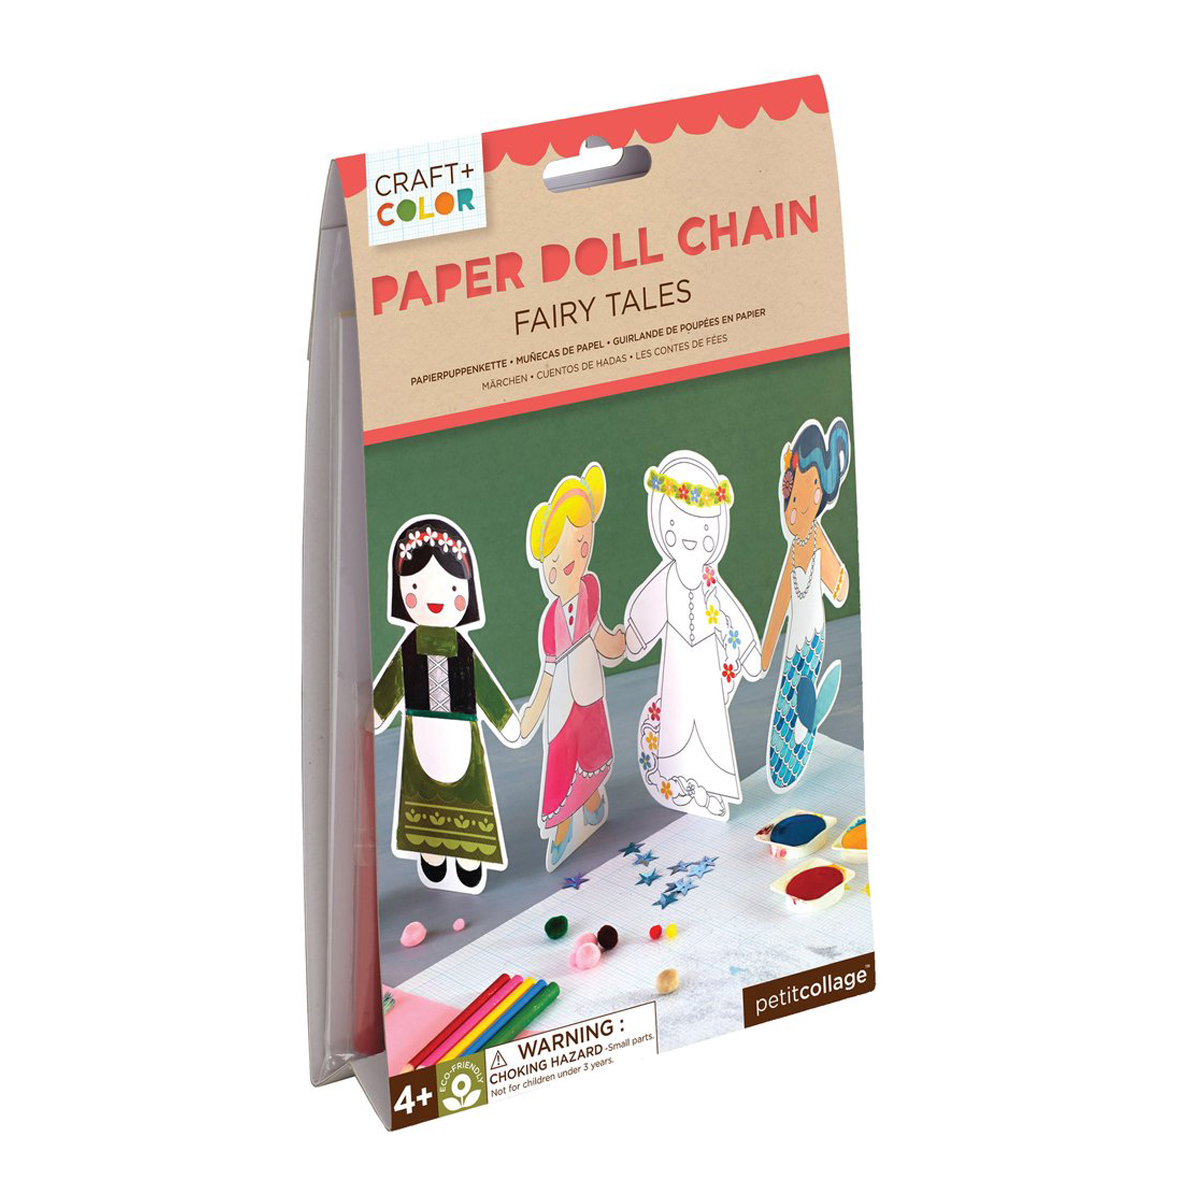 Petit Collage Fairy Tales Paper Doll Chain Craft Kit